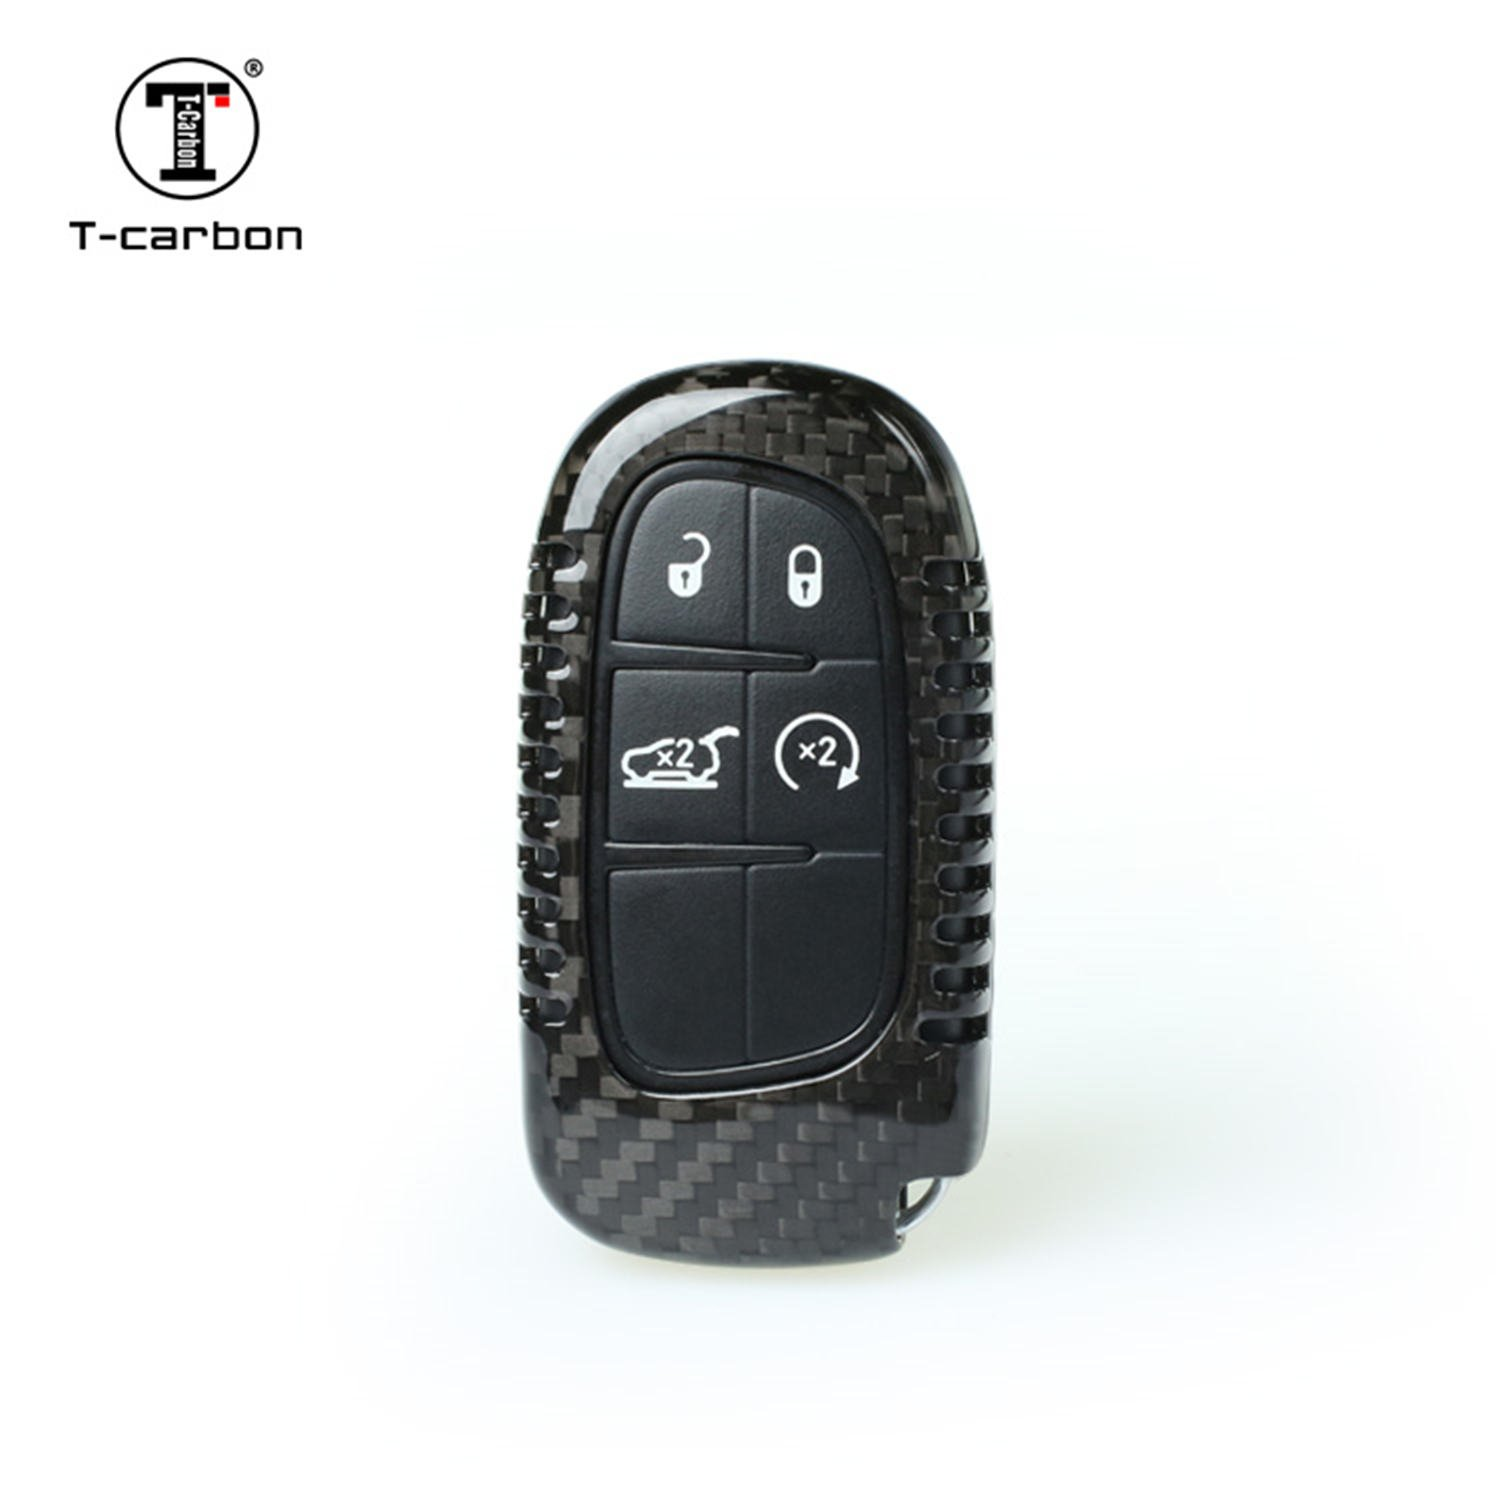 Carbon Fiber Key Fob Cover for Jeep Cherokee Key Fob Remote Key Light Weight Glossy Finish Key Fob Protection Case Fits Jeep Cherokee Smart Keyless Start Stop Engine Car Key Black